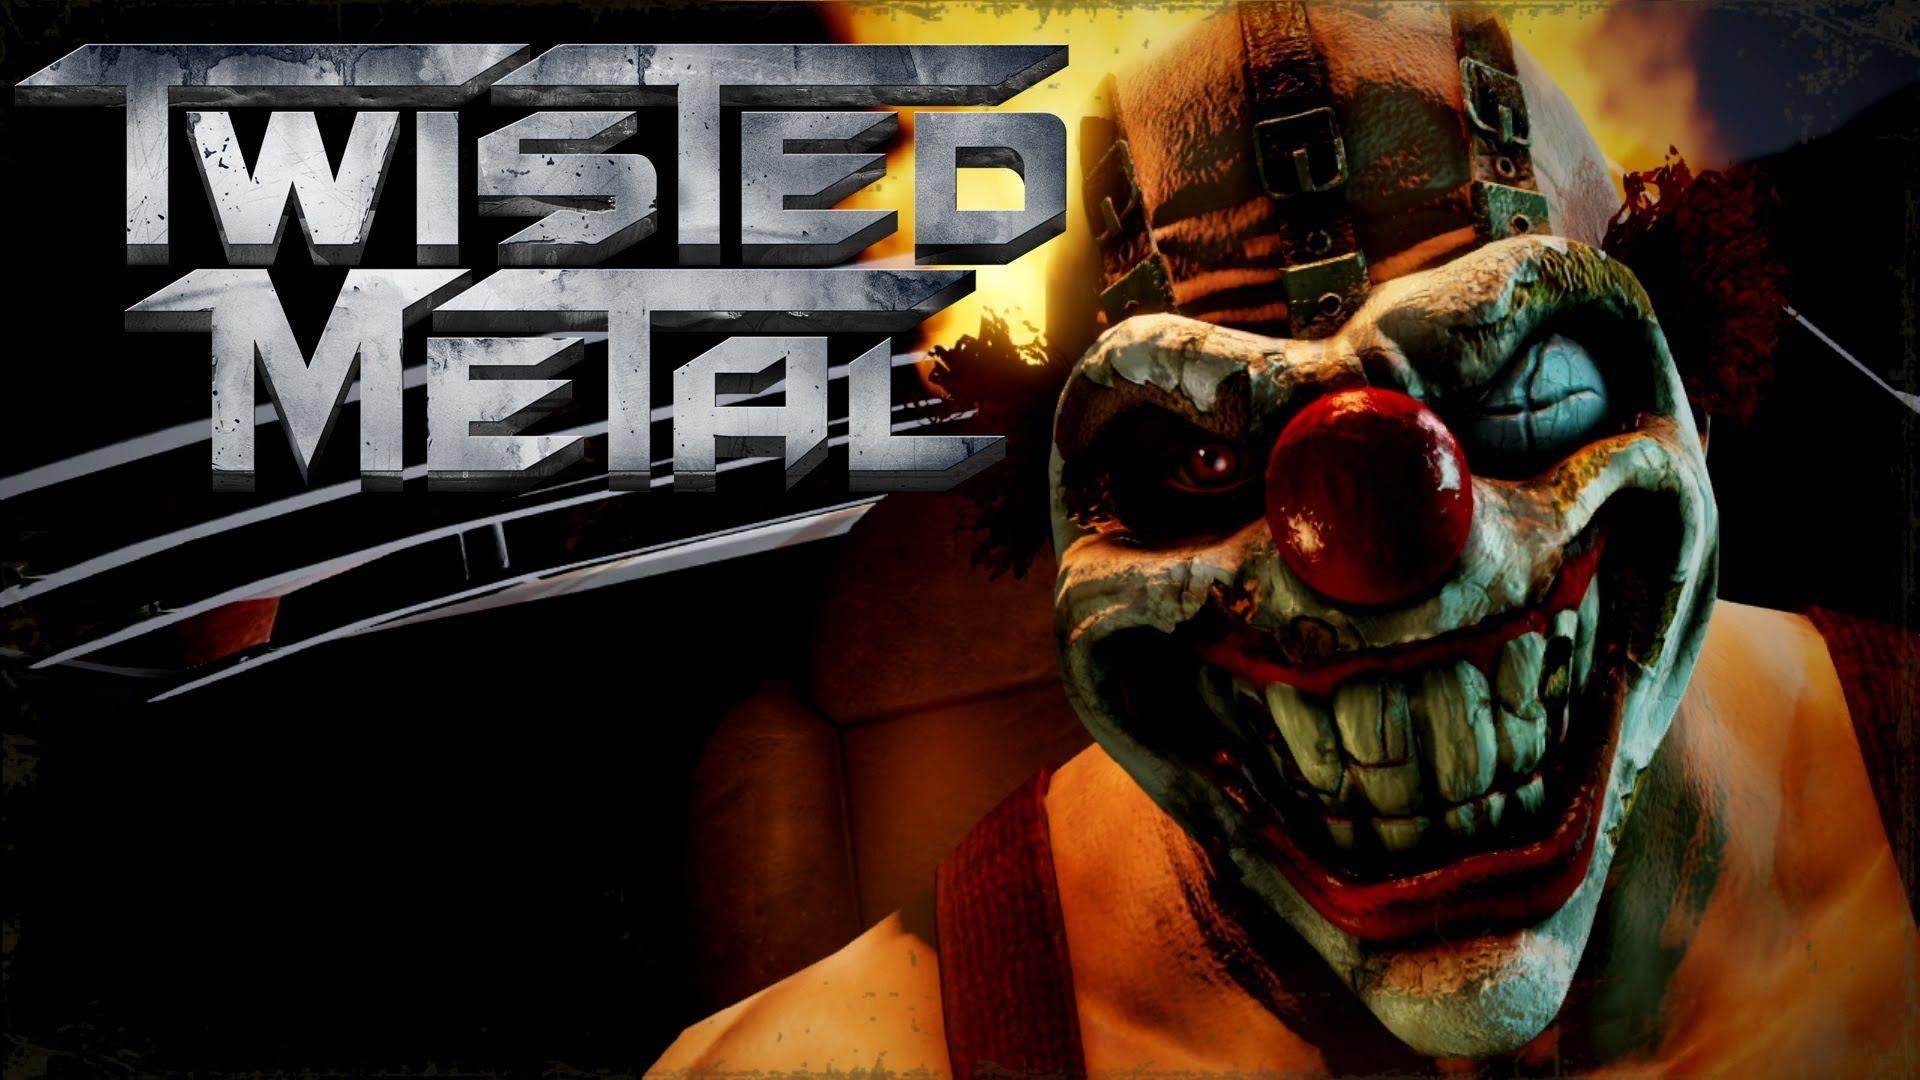 Images For > Twisted Metal Ps3 Wallpaper - Twisted Metal , HD Wallpaper & Backgrounds